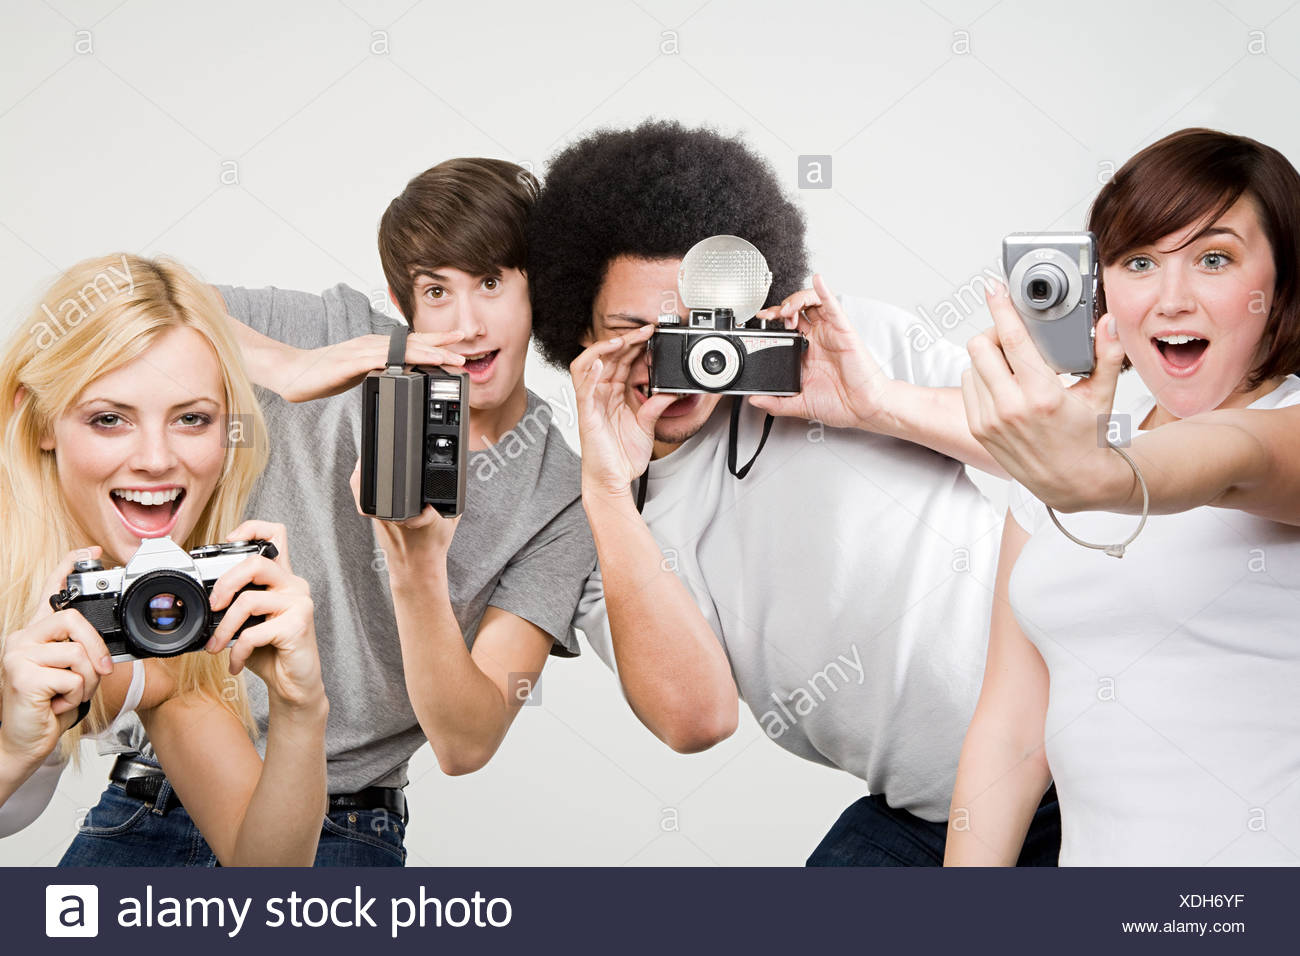 Friends taking pictures - Stock Image